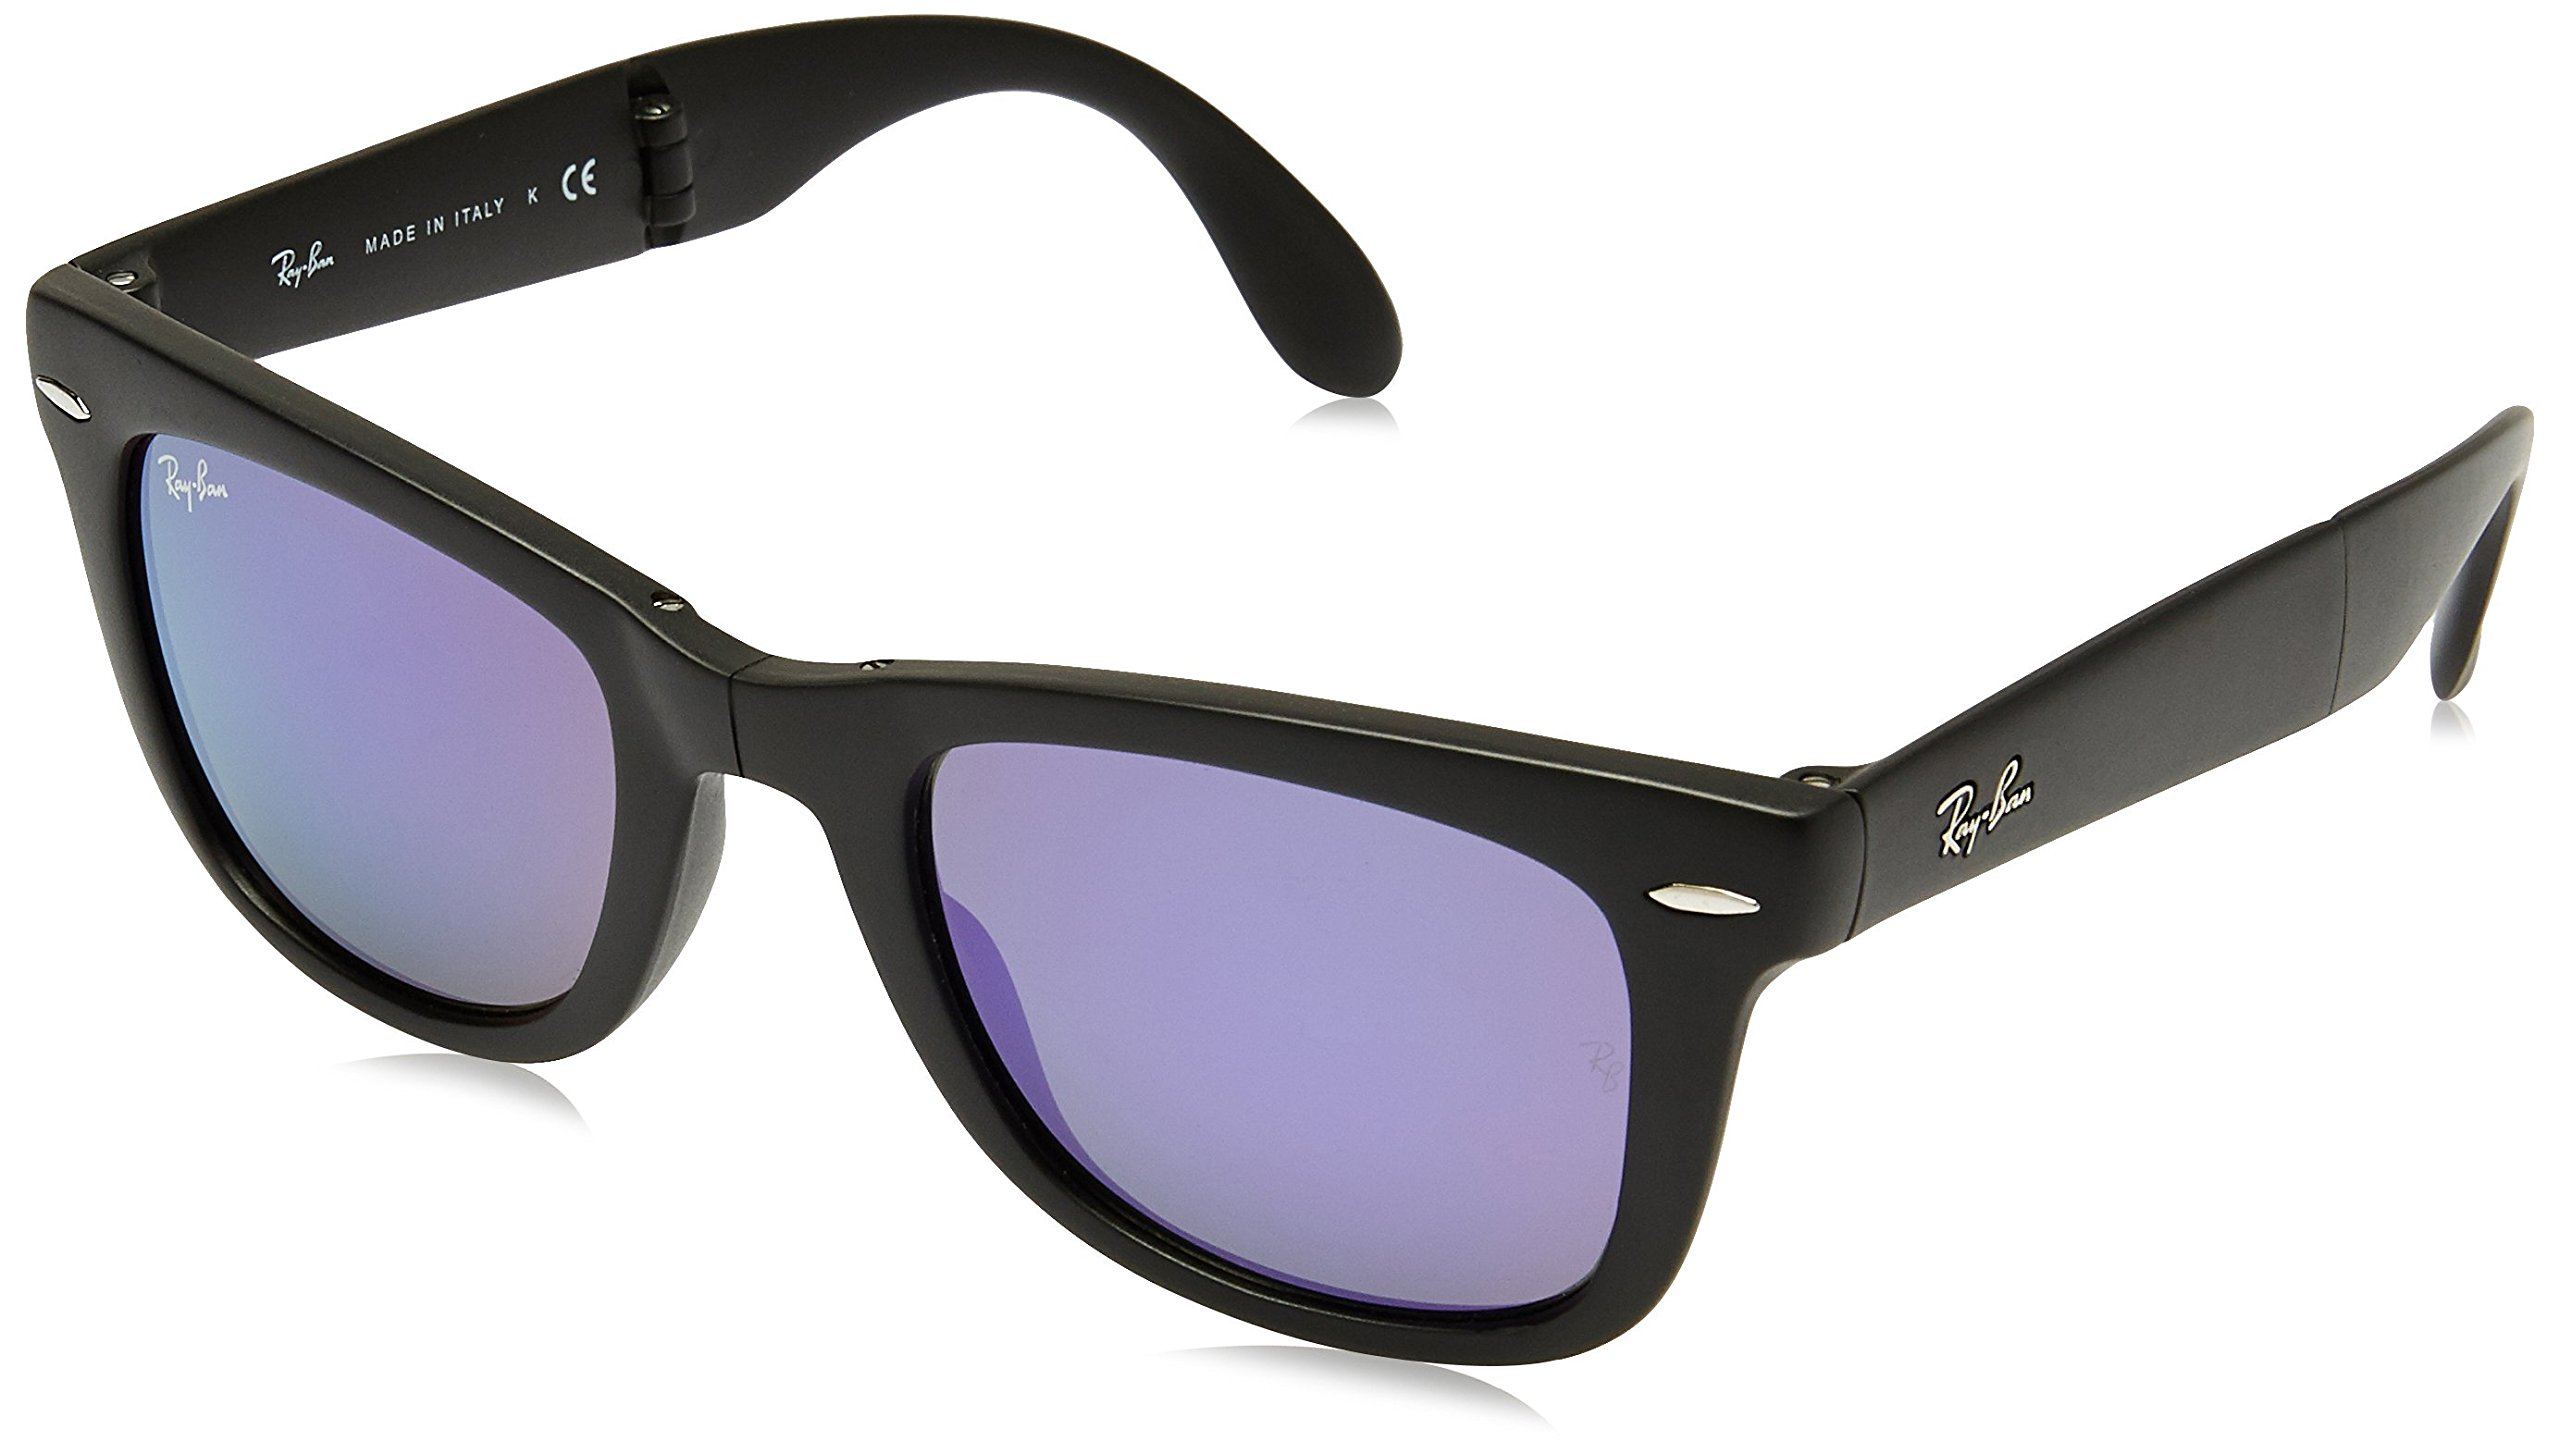 Ray-Ban FOLDING WAYFARER - MATTE BLACK Frame GREY MIRROR LILAC Lenses 50mm Non-Polarized